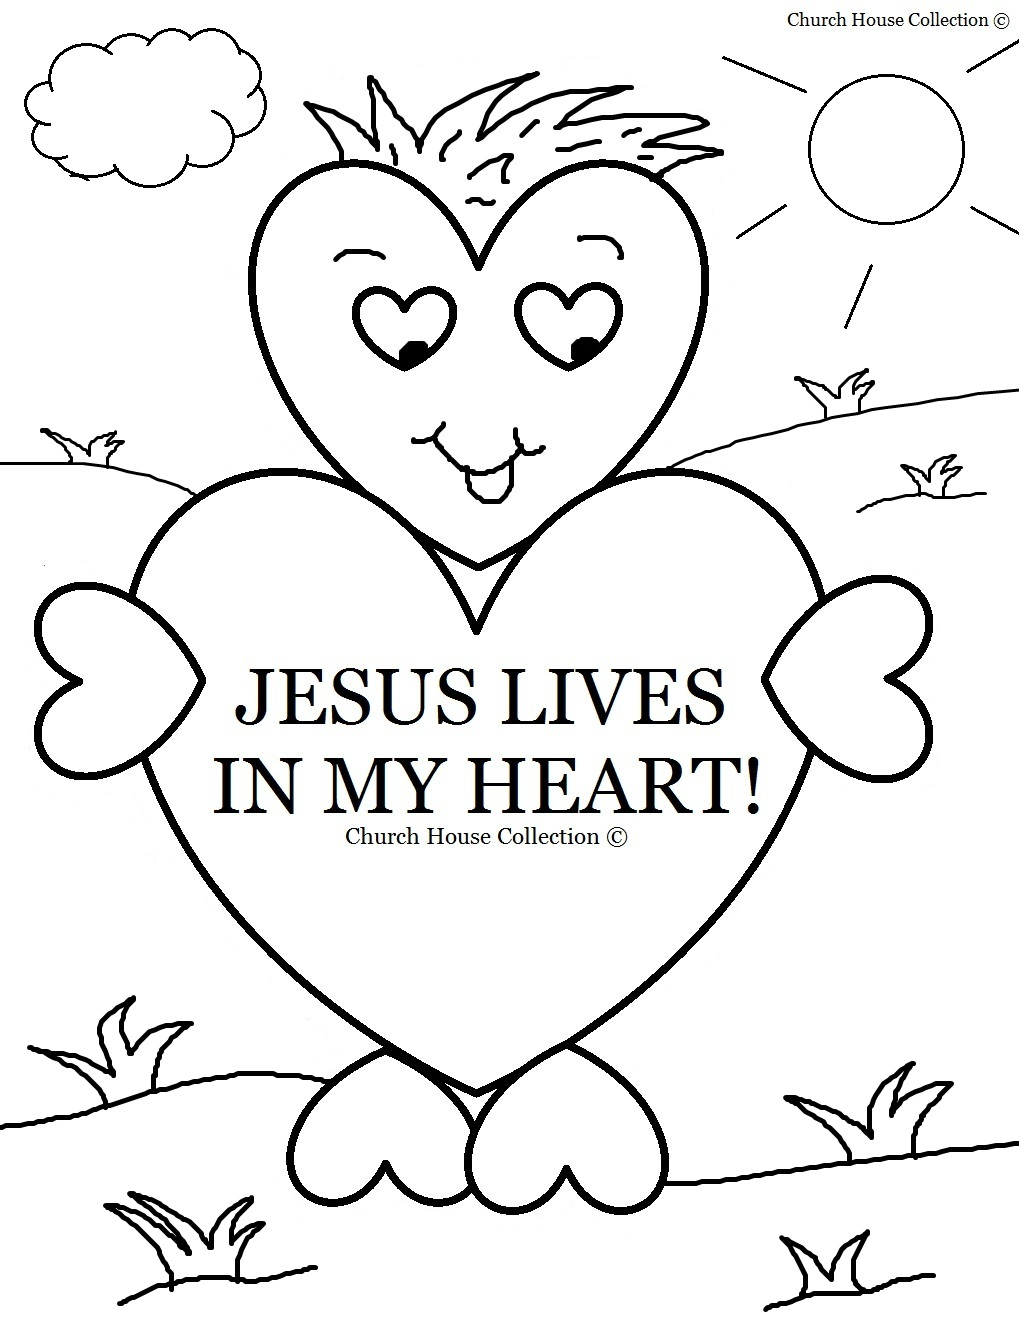 Free printable coloring pages for valentines day - Jesus Lives In My Heart Coloring Page For Sunday School Valentine S Day